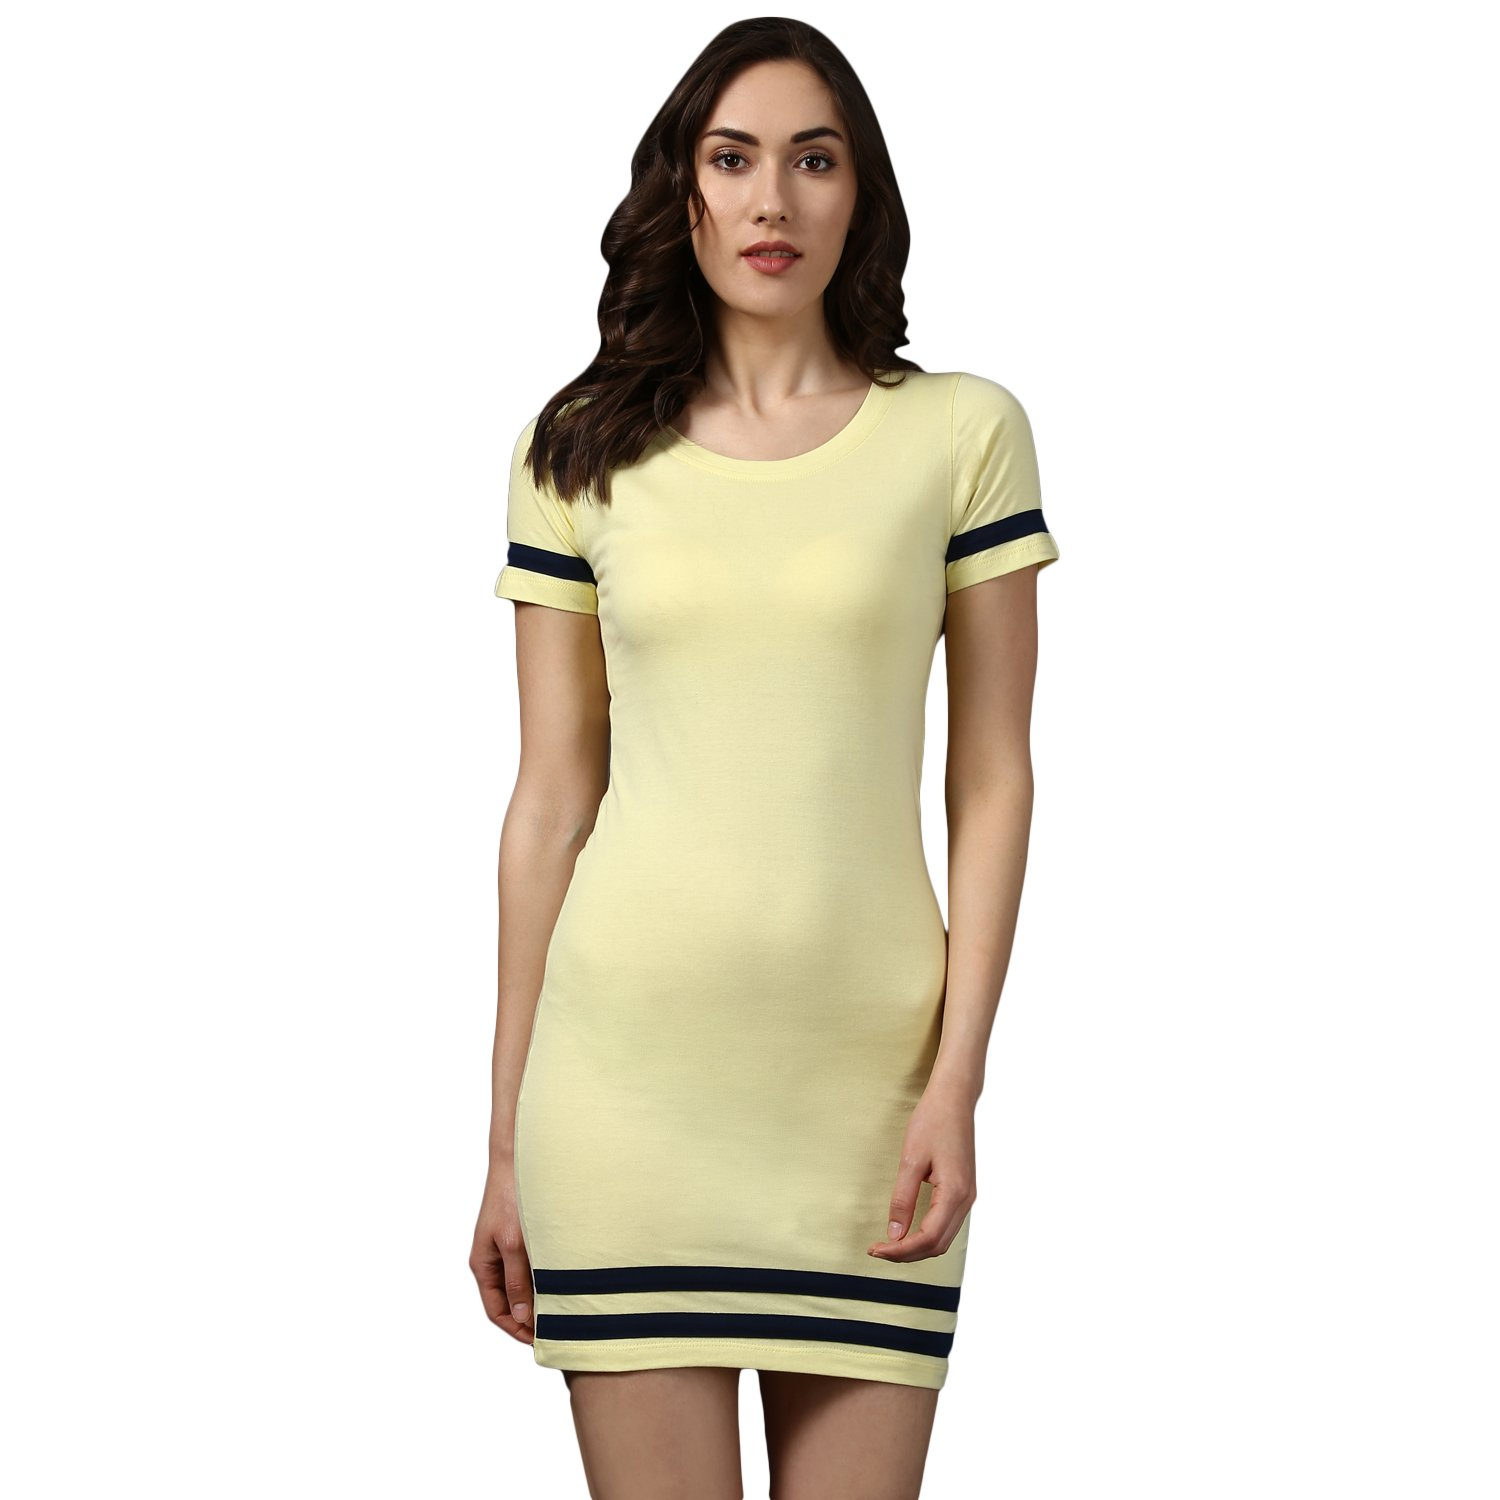 eb388066b869 MKH yellow Cotton Blend Solid Cap Sleeve Bodycon Mini Dress for Women   Amazon.in  Clothing   Accessories